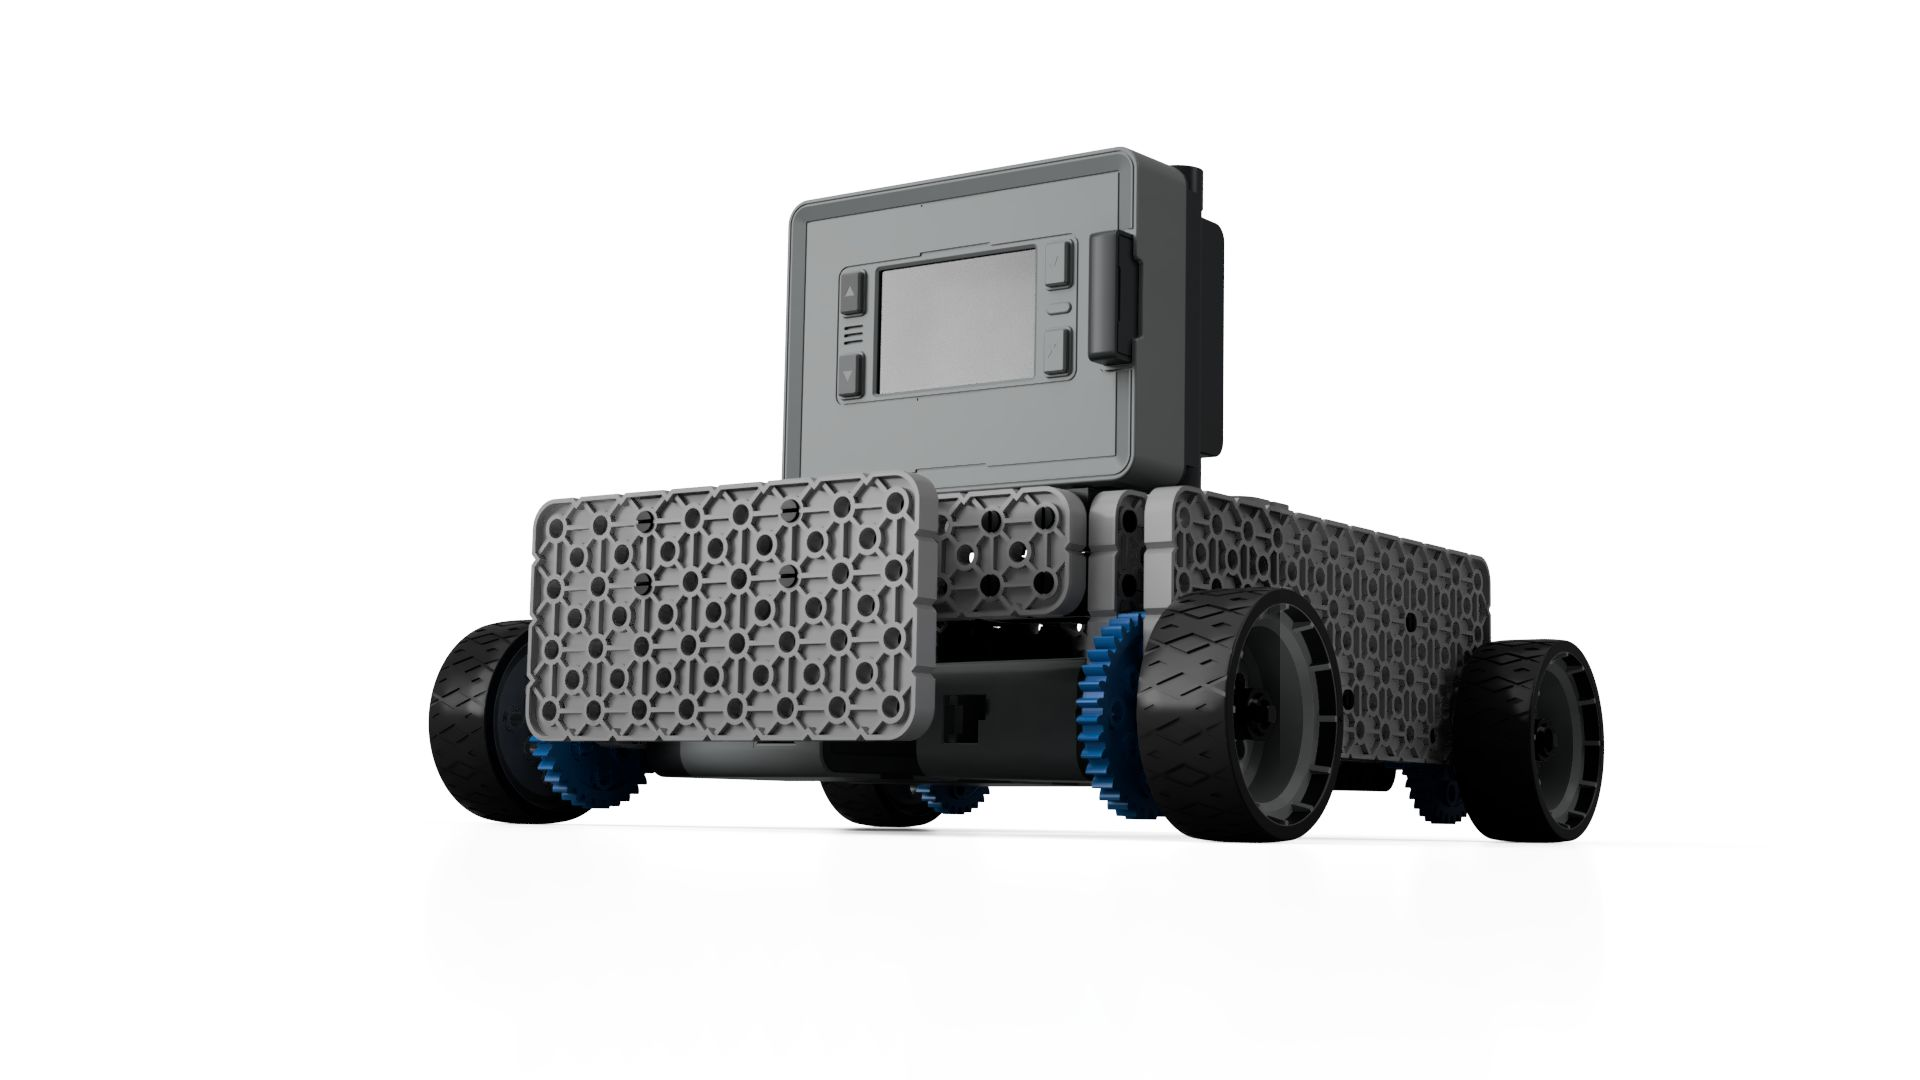 The-power-turtle-drivetrain---vex-iq-robotics-2019-may-25-06-10-36pm-000-customizedview19369979274-png-3500-3500